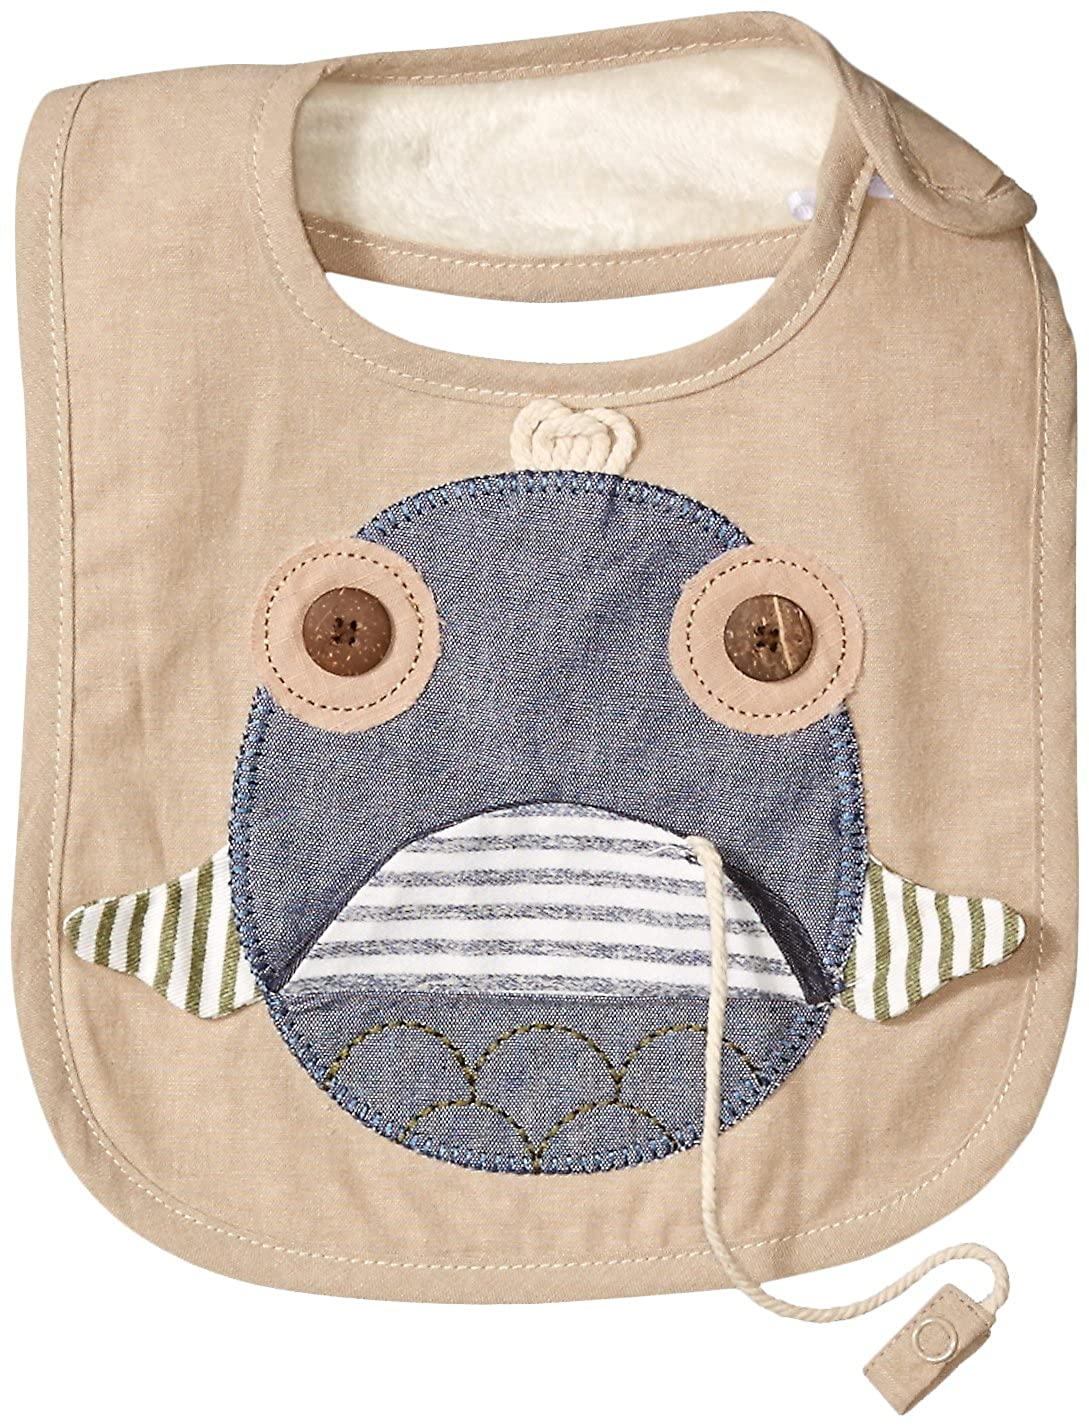 0a99c774a Mud Pie Baby Boys Applique Bib Multi One Size Mud Pie Children' s Apparel  1552183 Baby